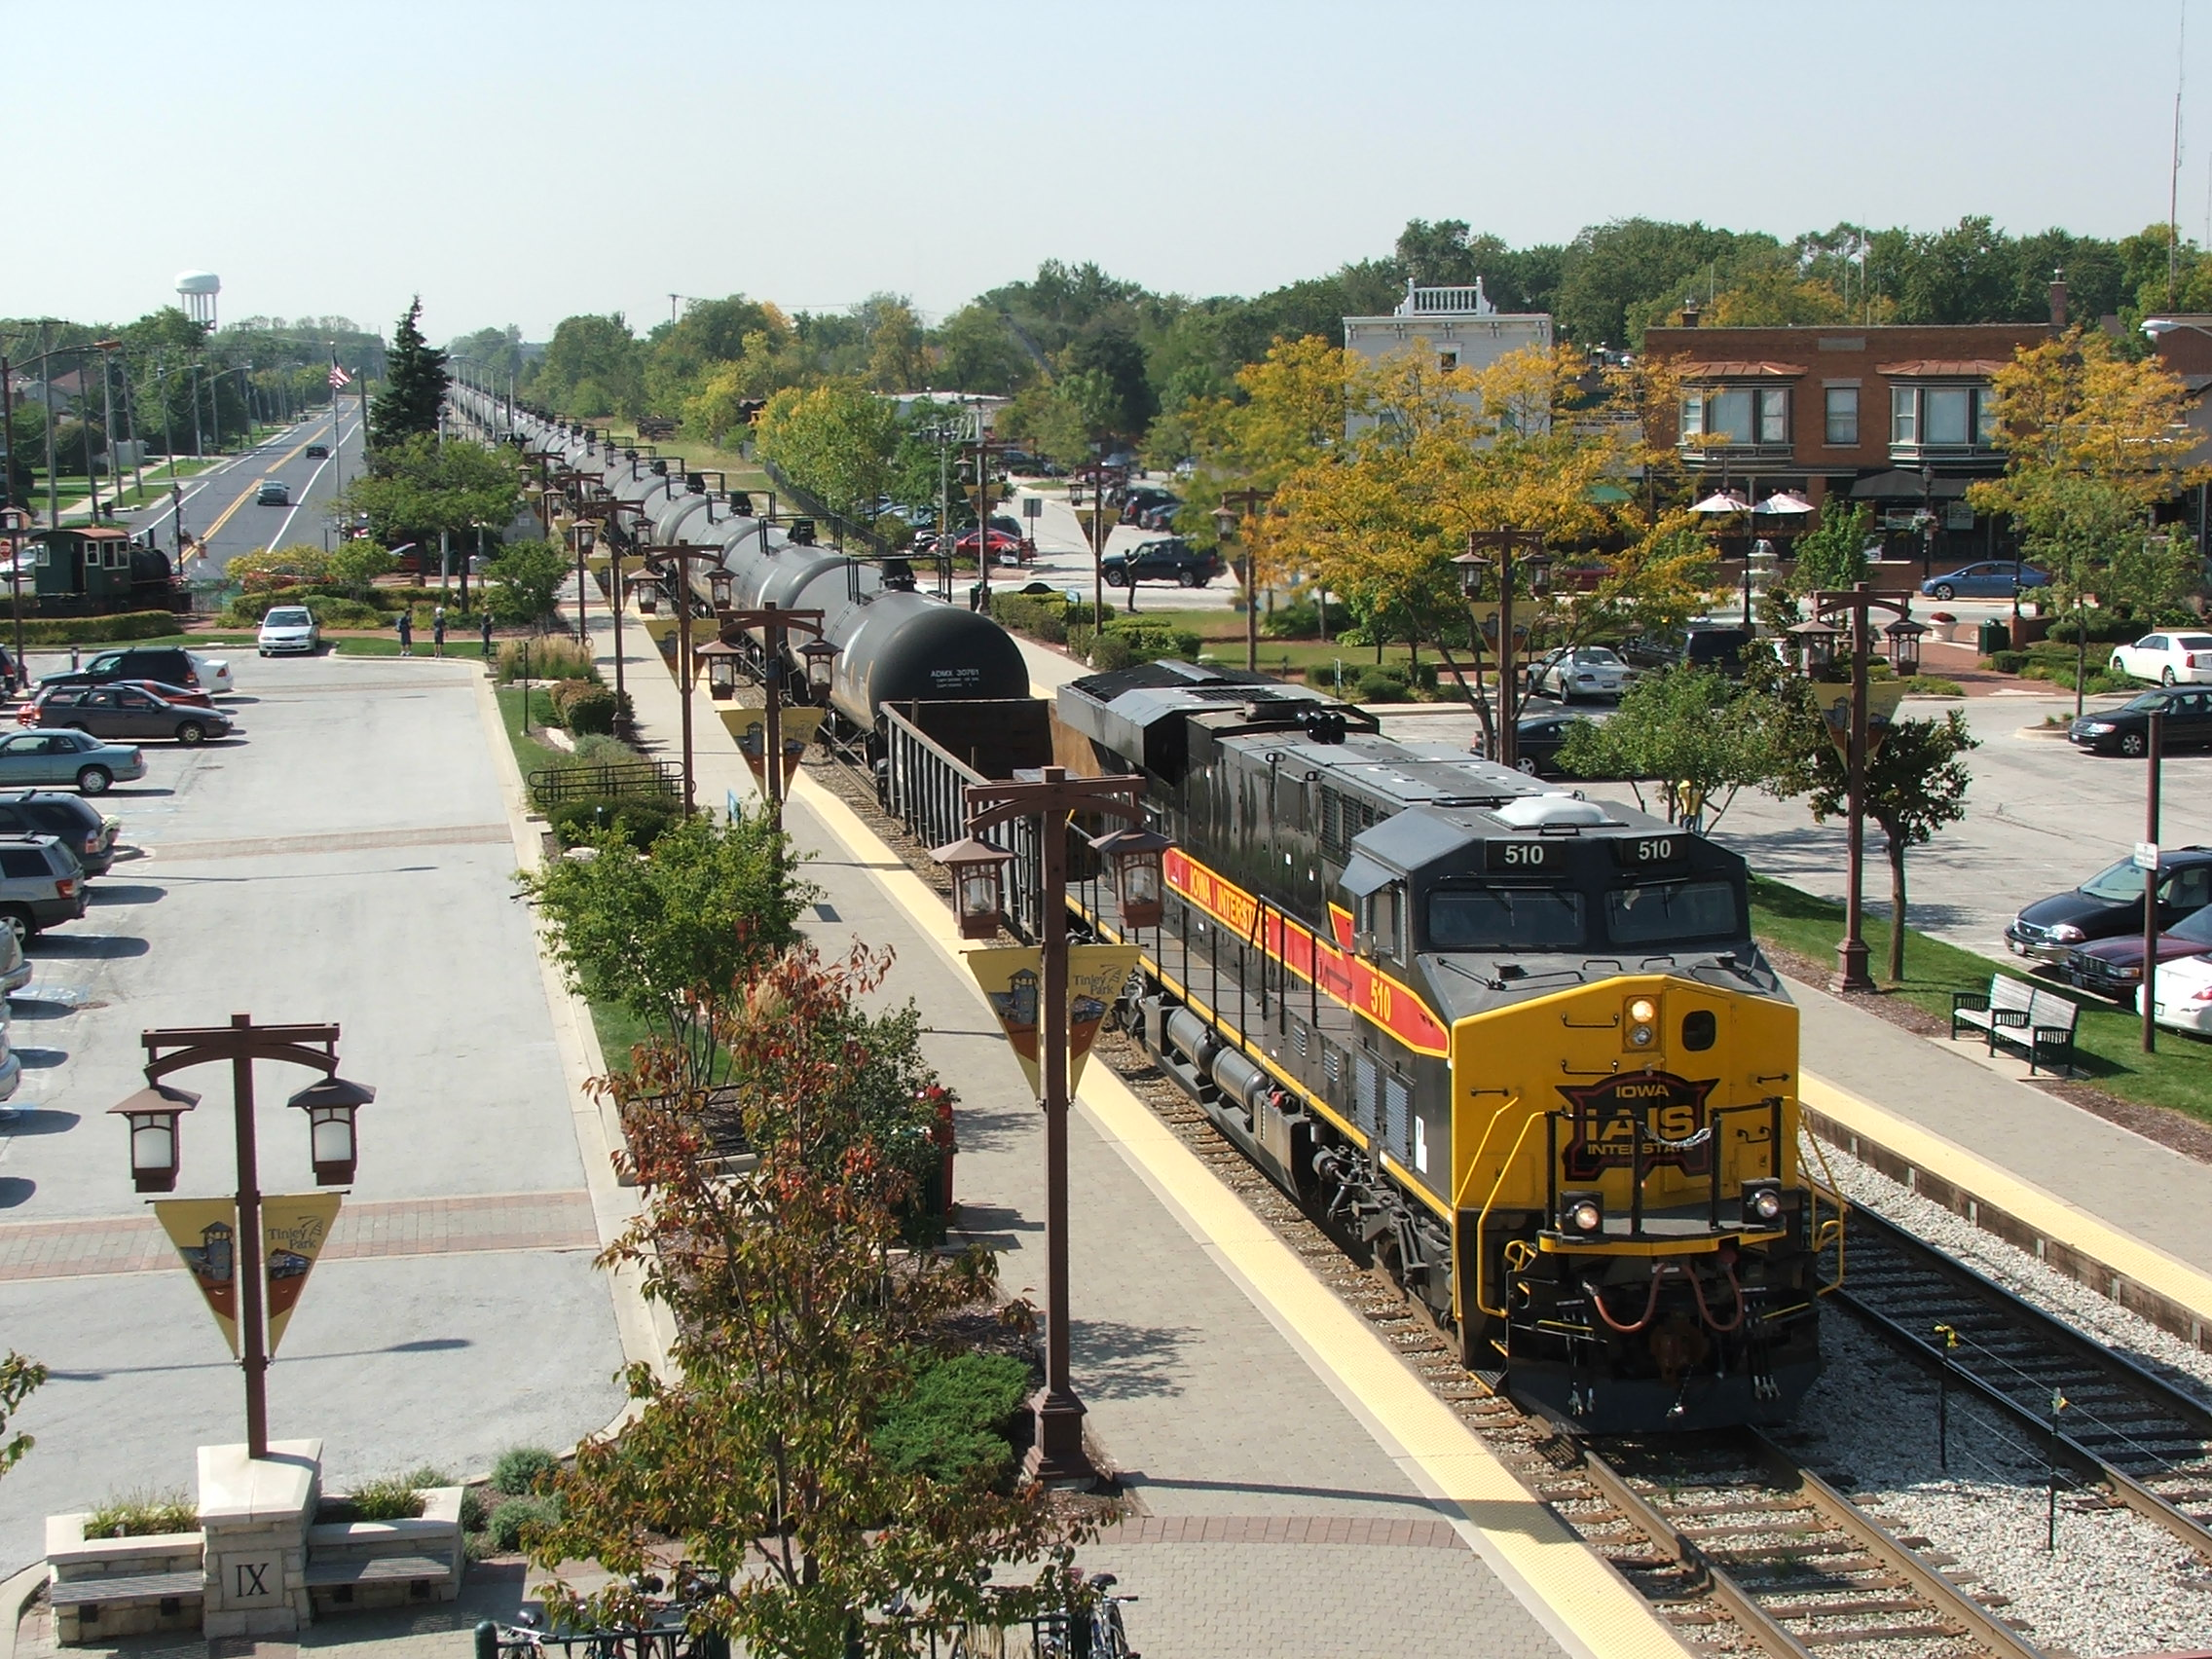 After holding at C.P. 66th Ct for the westbound Metra to cross-over, Iowa 510 and DPU 502 are in Run 8 building speed toward BI. Shot was taken from the Tinley Park clock tower.